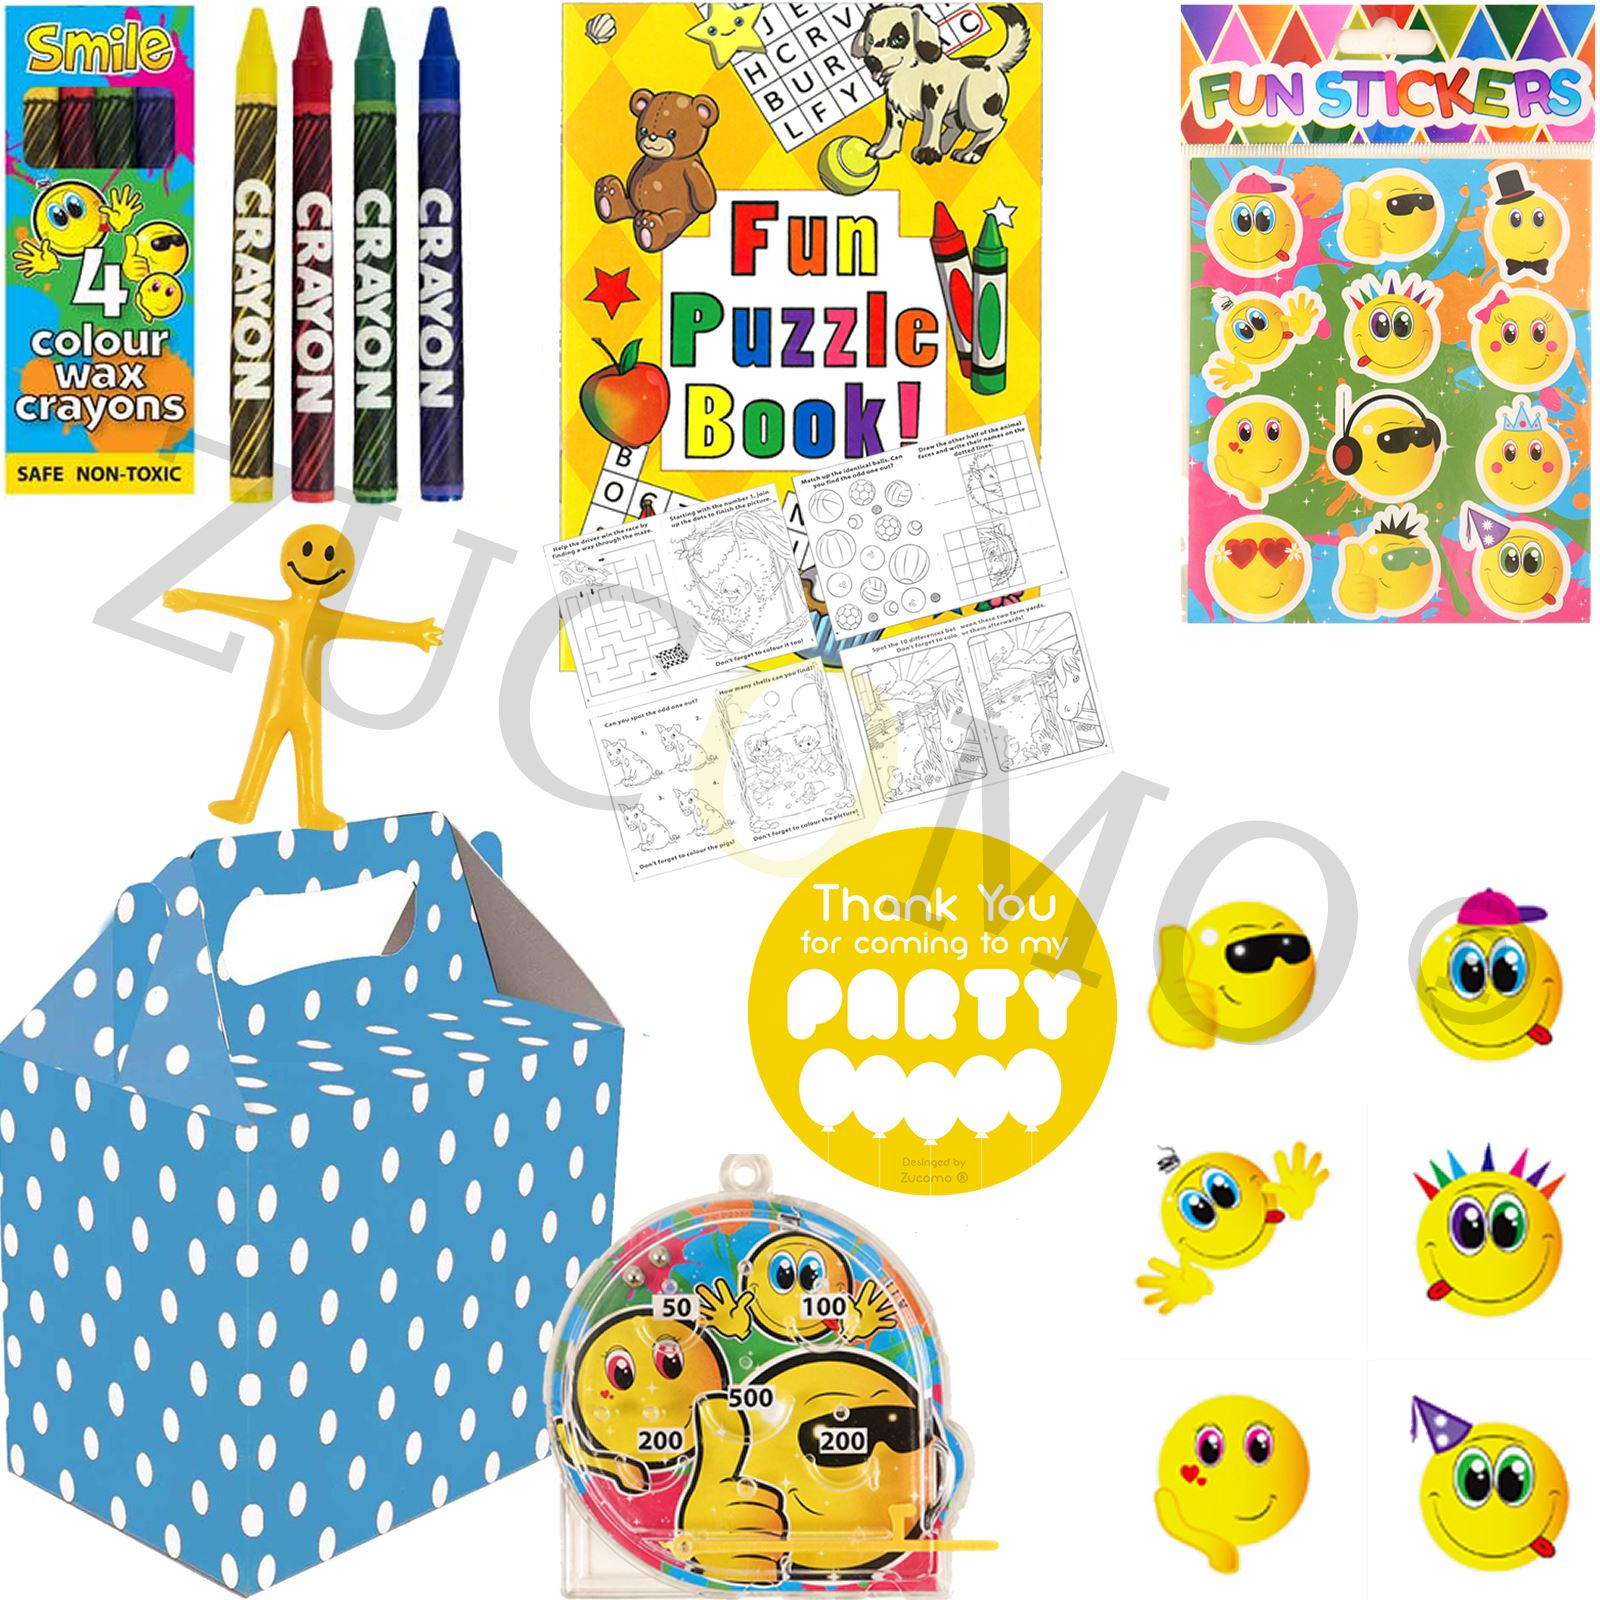 Boys Girls Party Gift Bags Childrens Birthday Loot